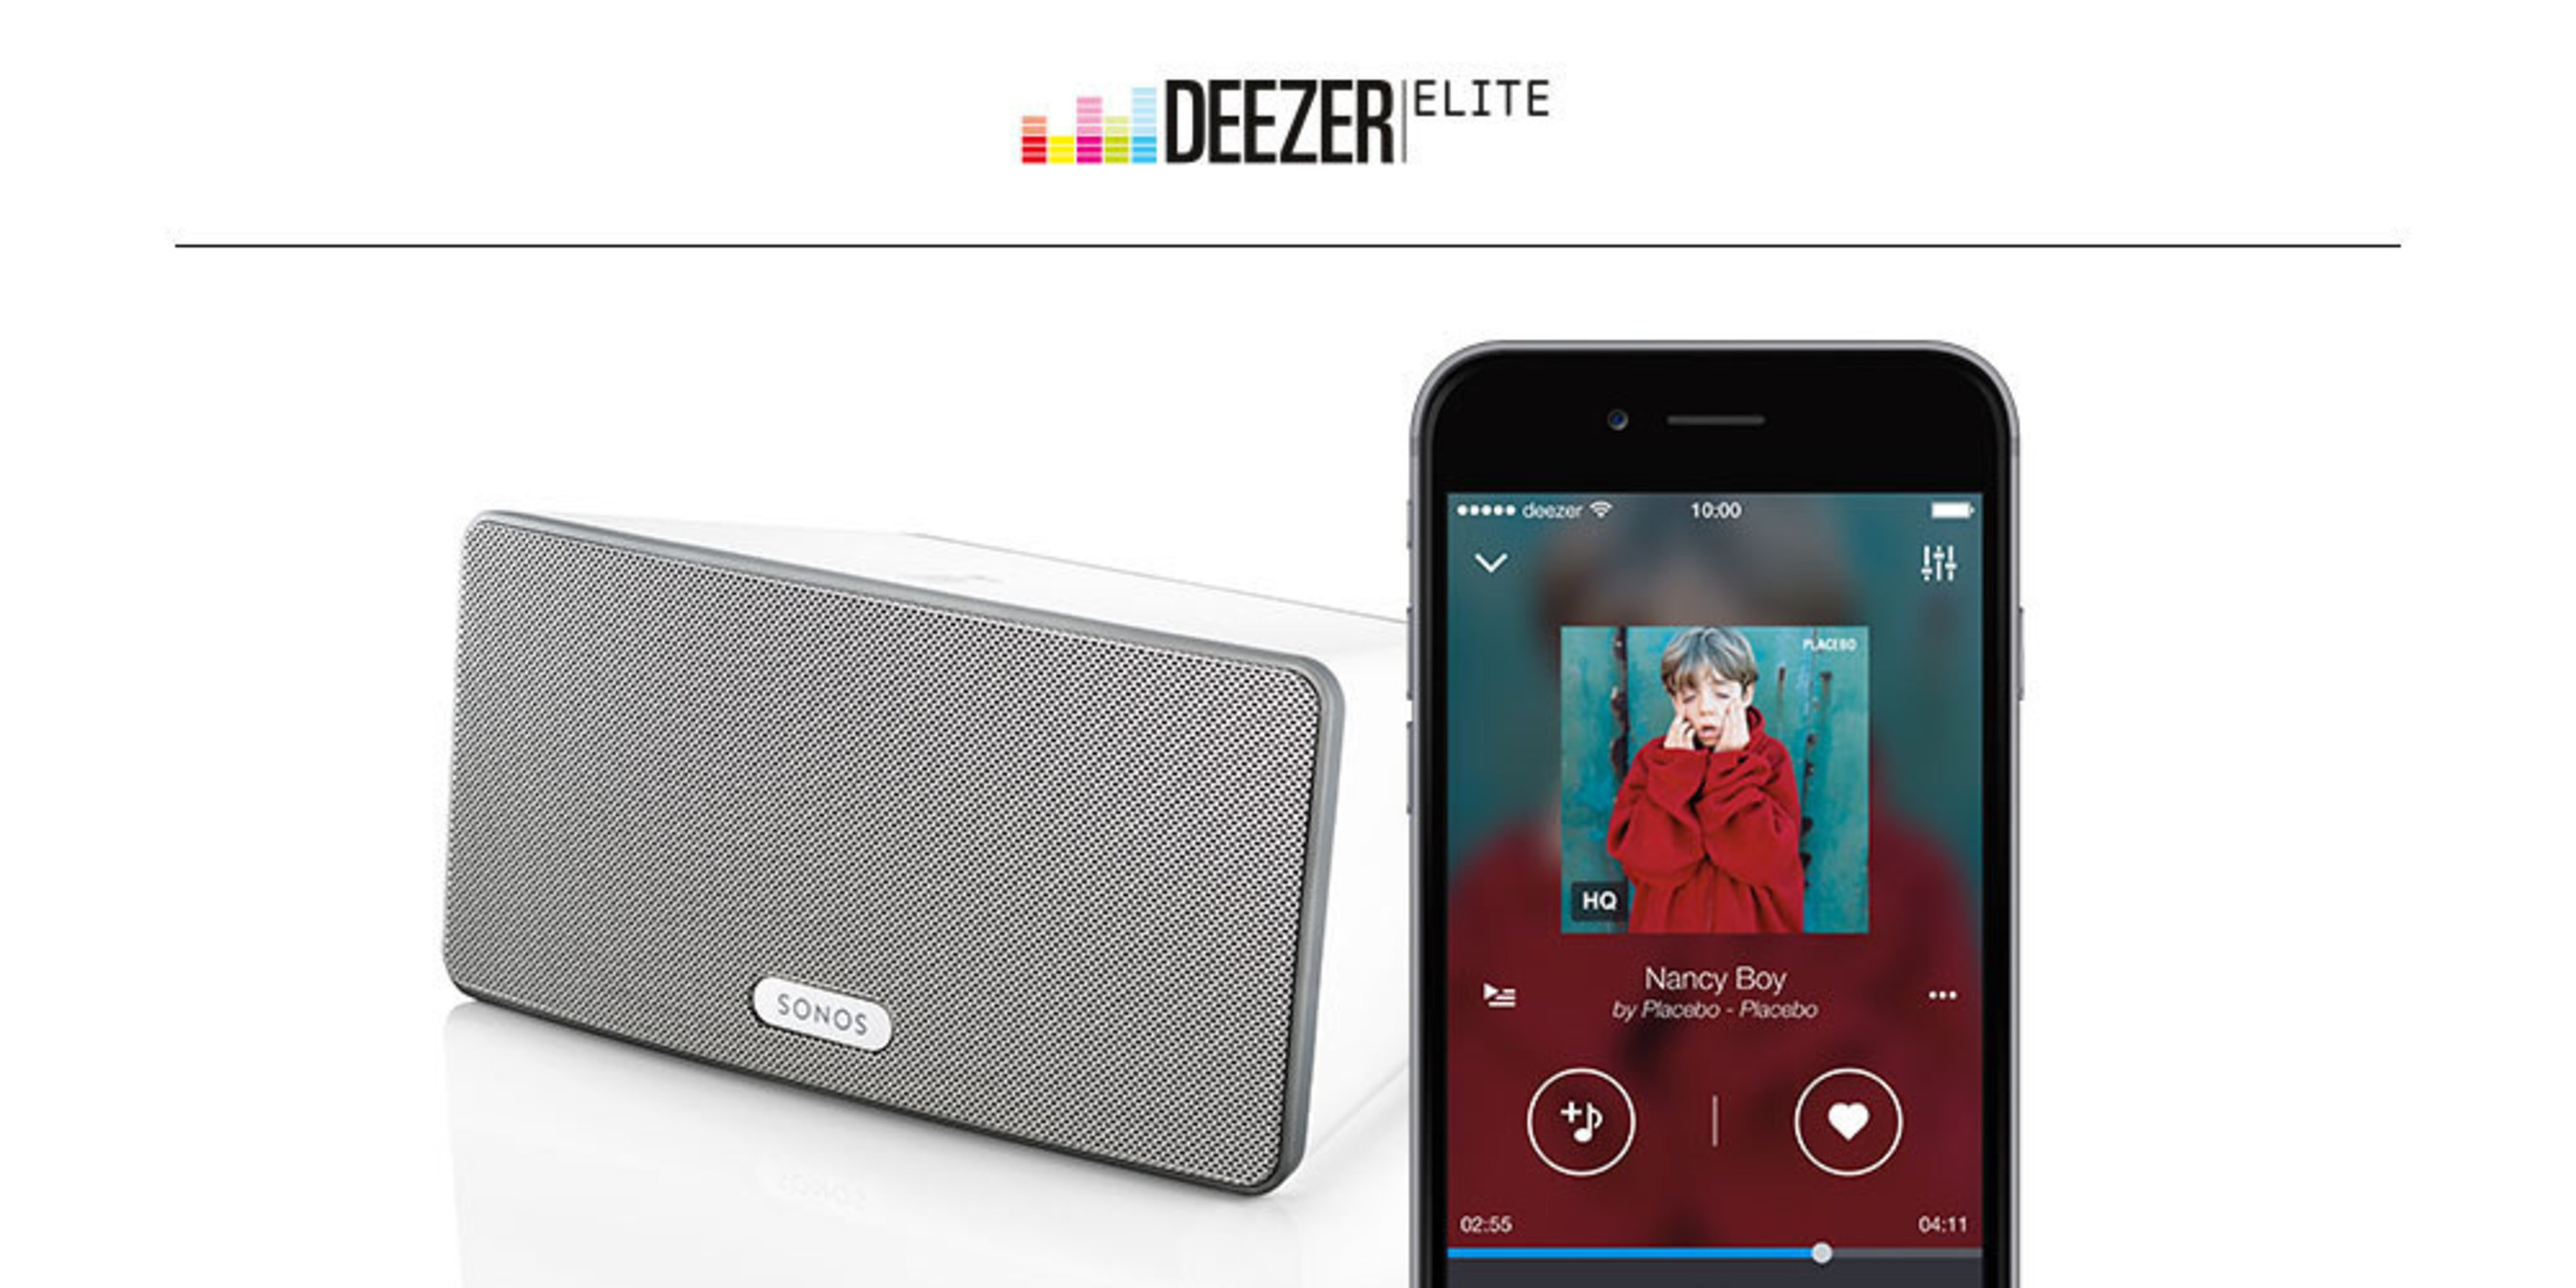 Deezer Announces High Definition Streaming on Sonos Globally, Deezer Elite Becomes Largest Global High Definition Streaming service